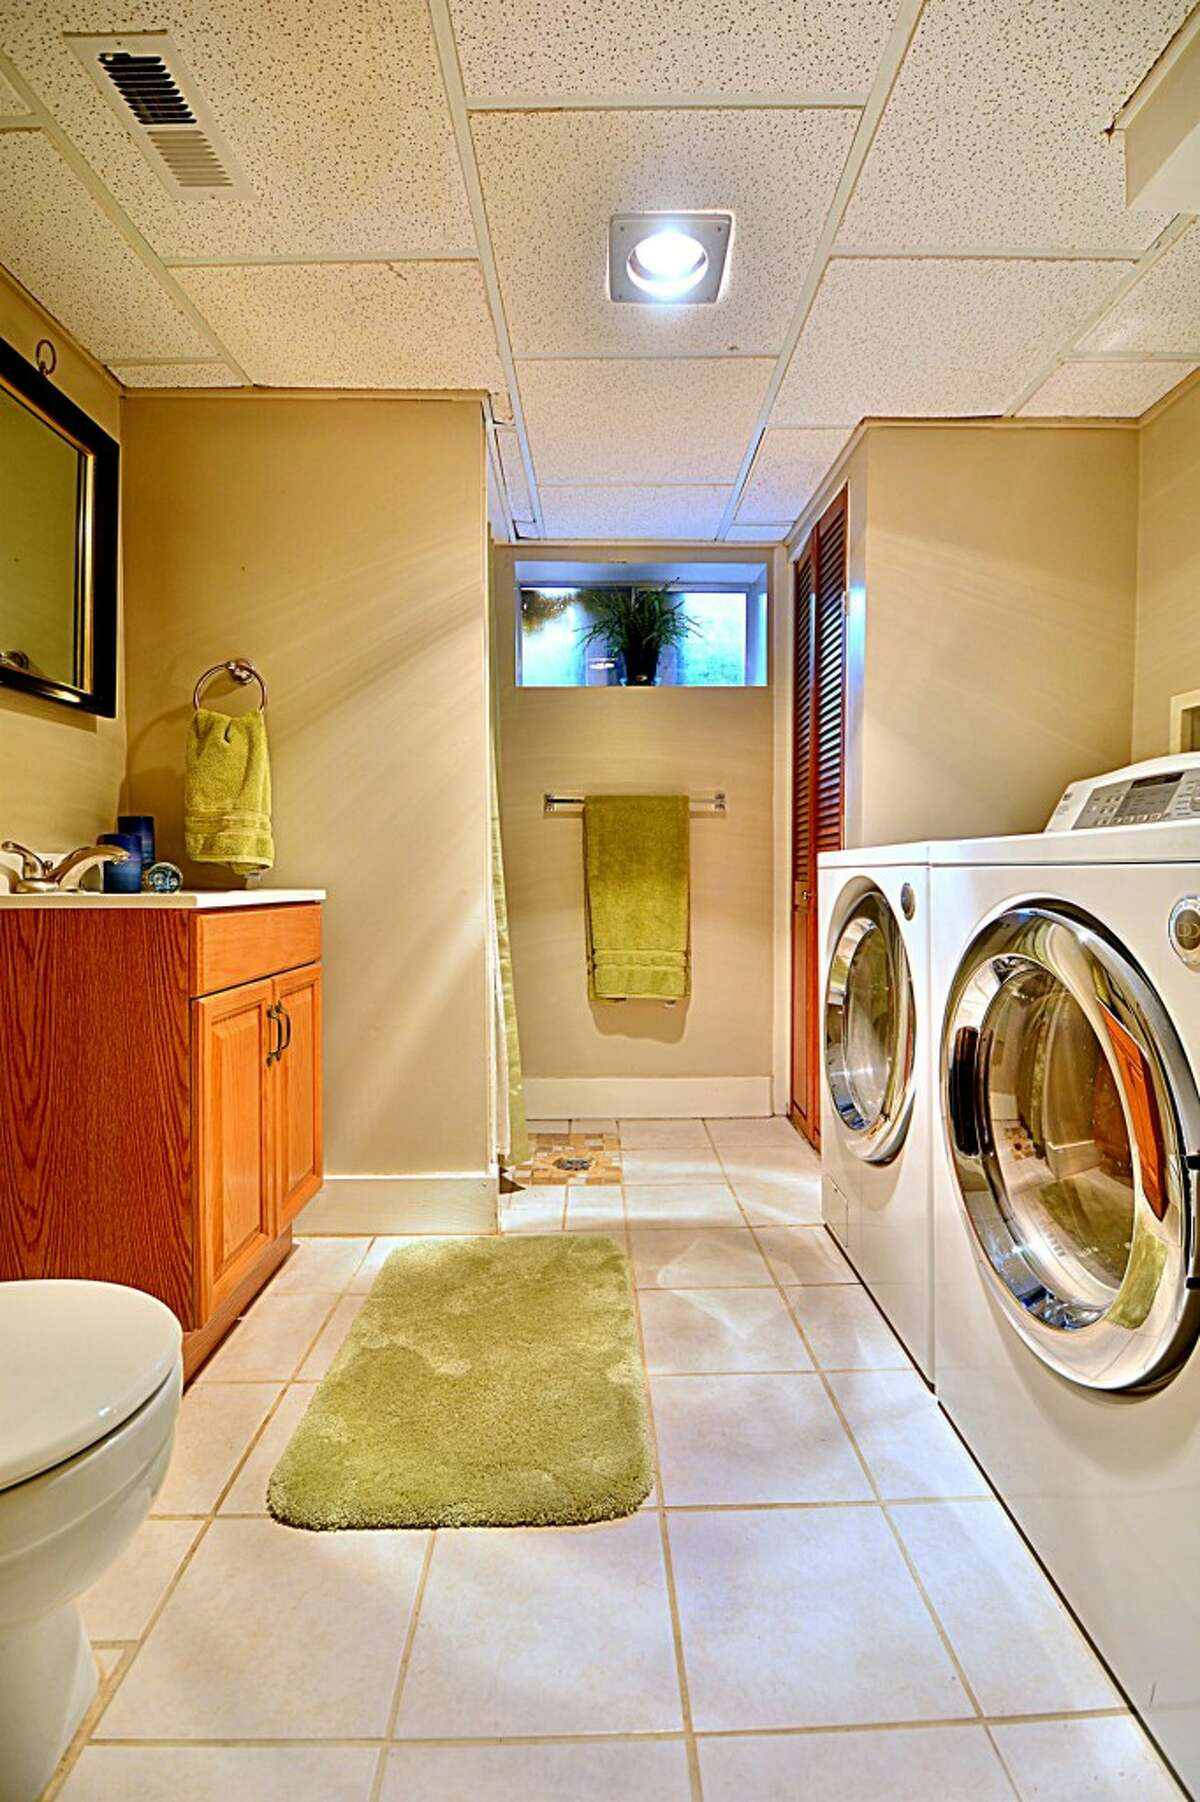 The laundry room in 837 N.E. 105th St.